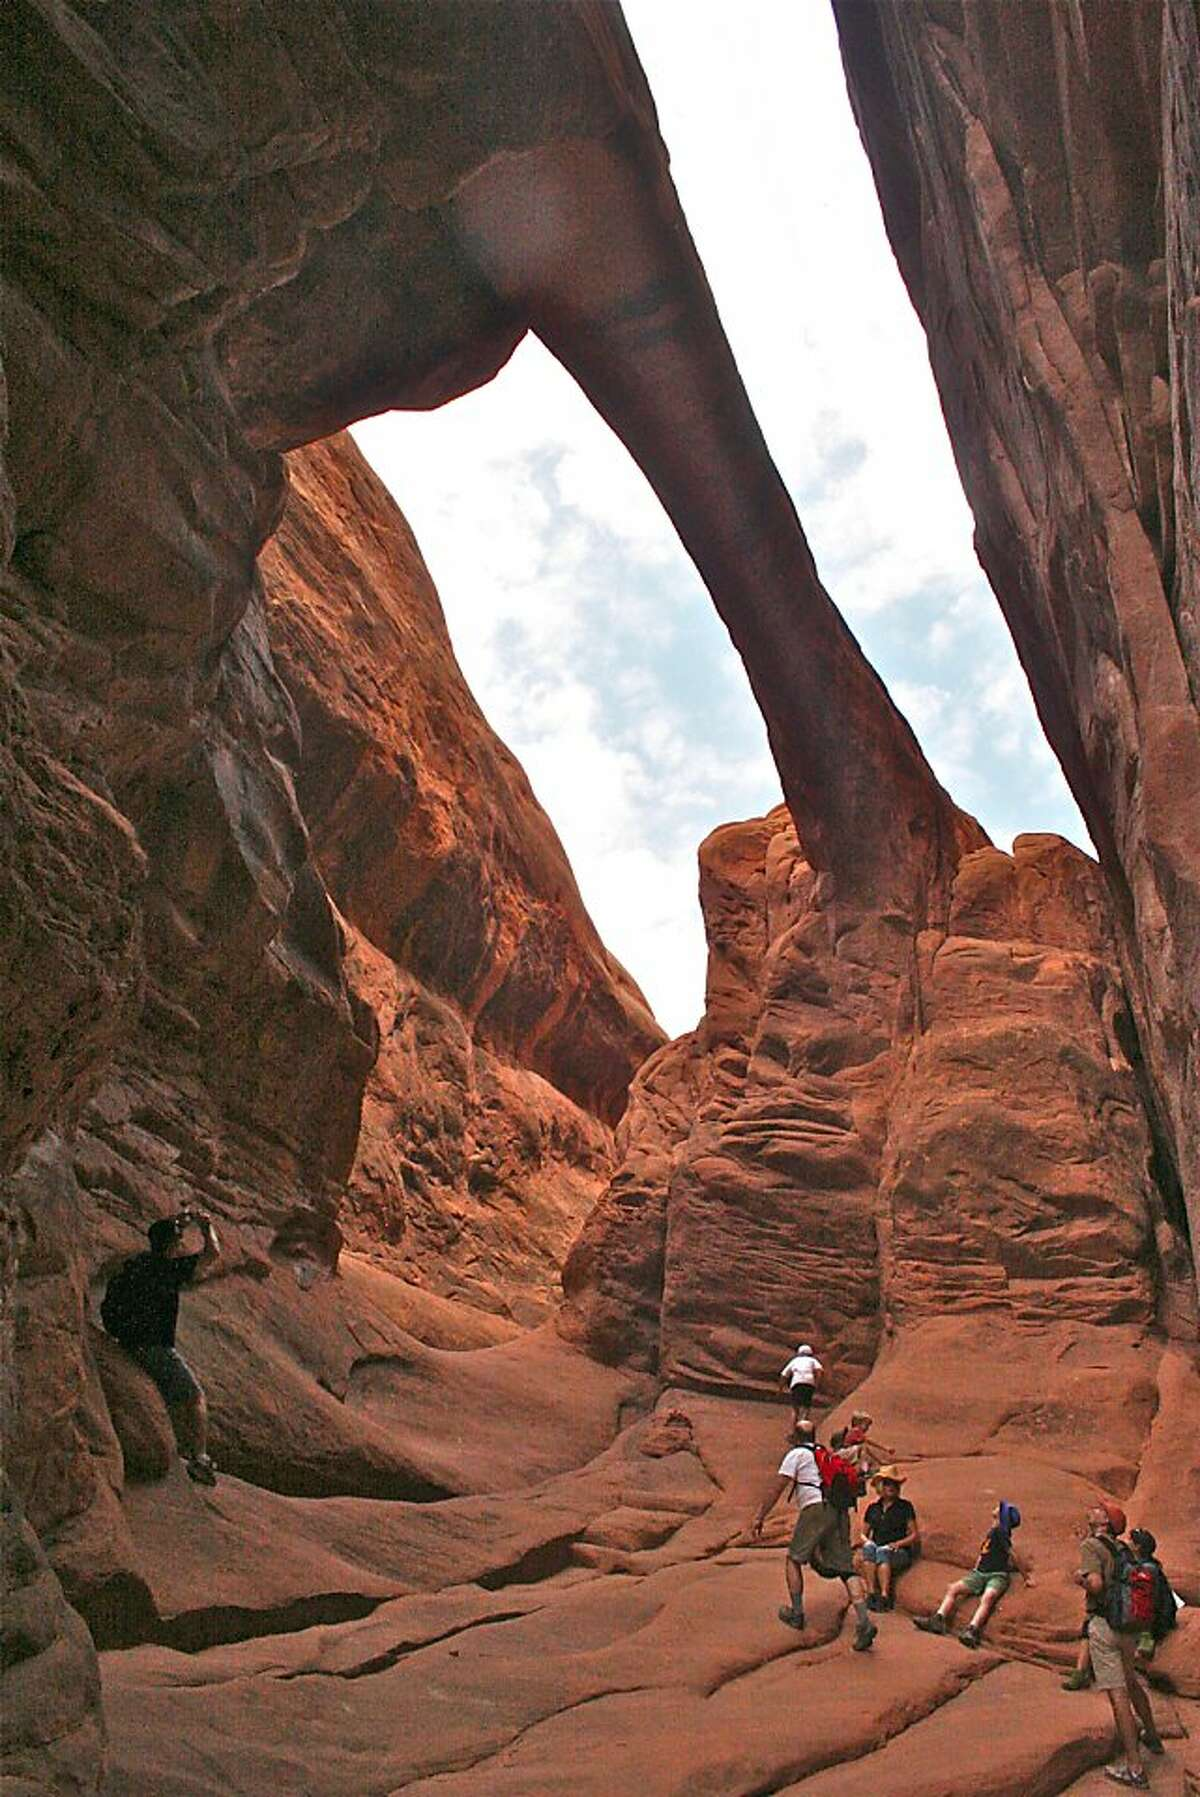 Despite being one of the largest arches in Fiery Furnace, Surprise Arch is easy to miss. Legend has it that the arch got its name when an expedition camped right under it and didn't notice until the next morning.